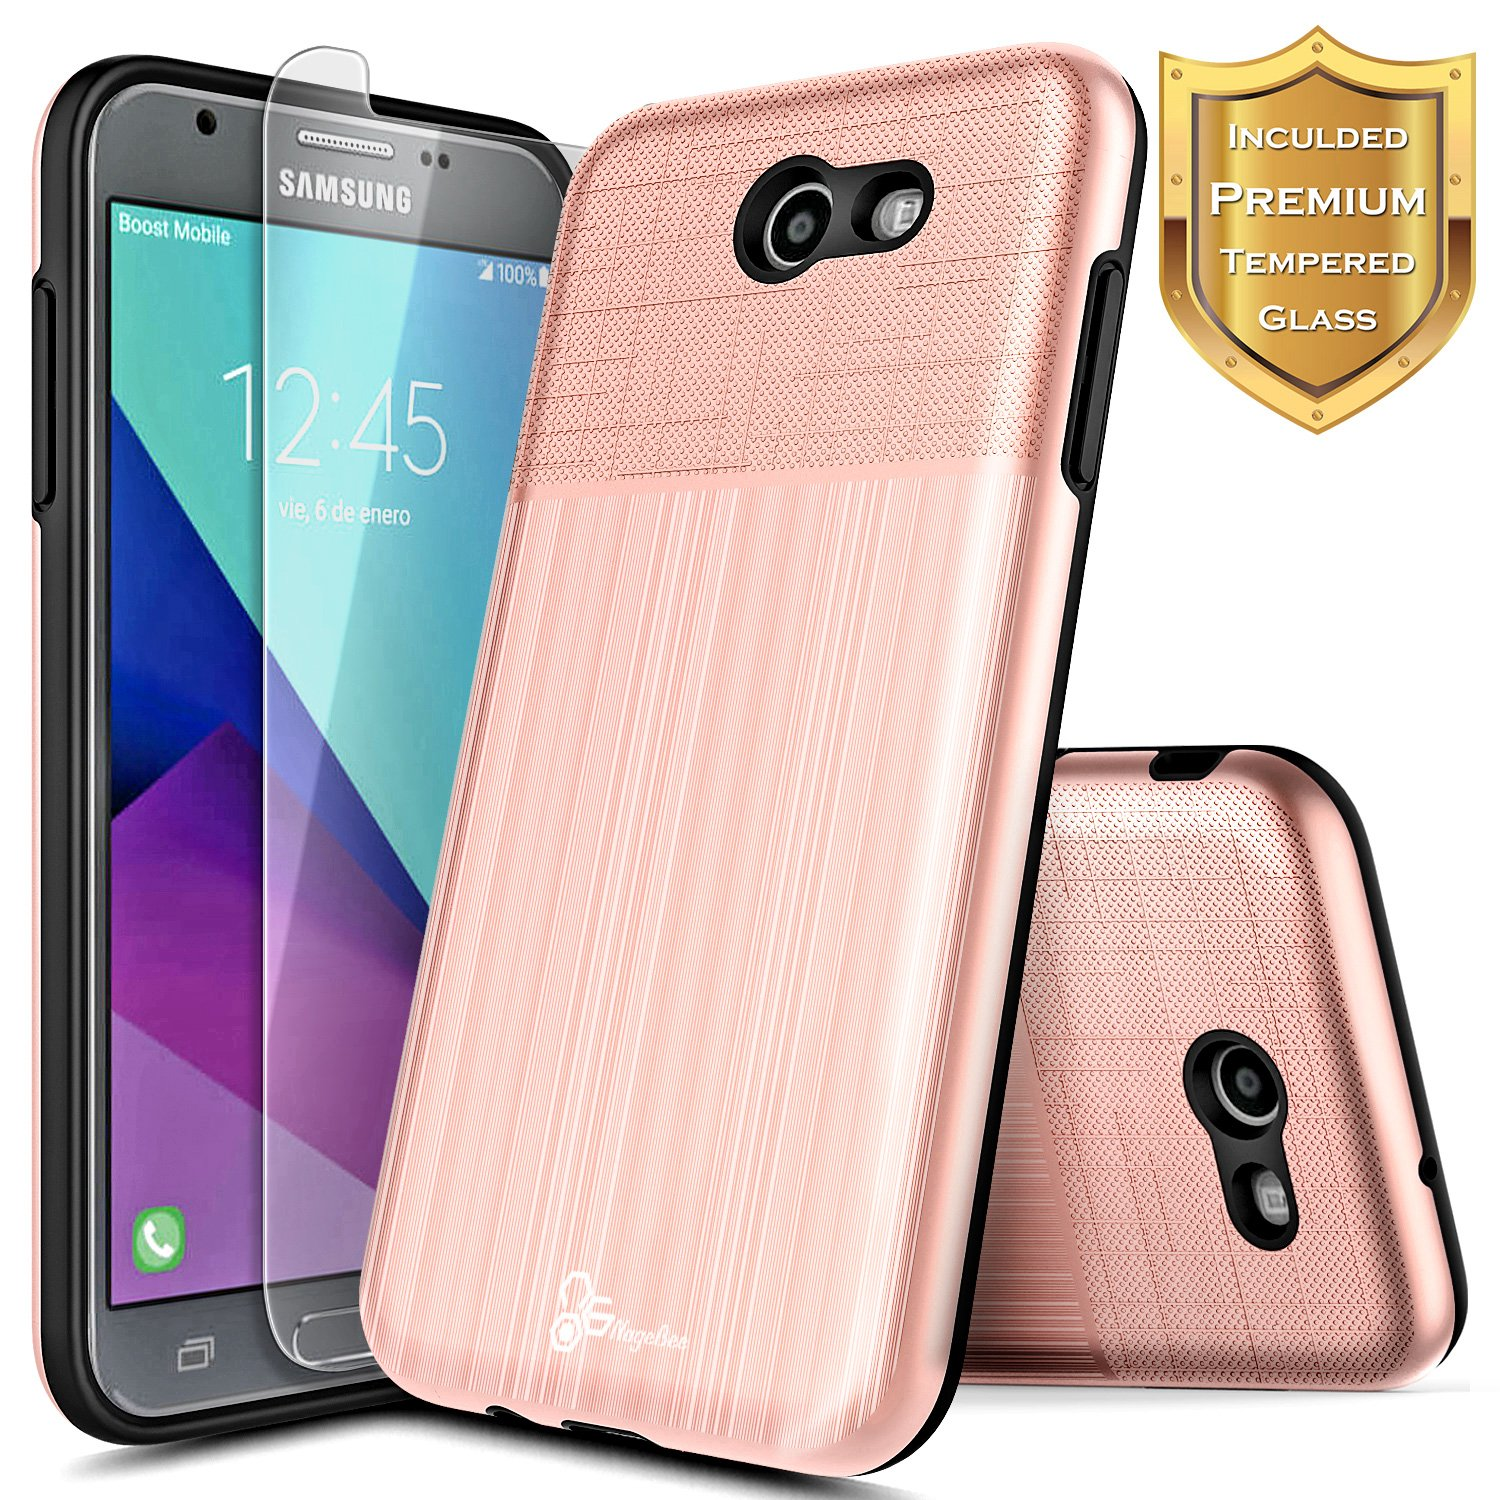 huge selection of fc1c5 e722a Amazon.com: Galaxy J7 Prime Case (Only For Metro PCS, T-Mobile) with ...